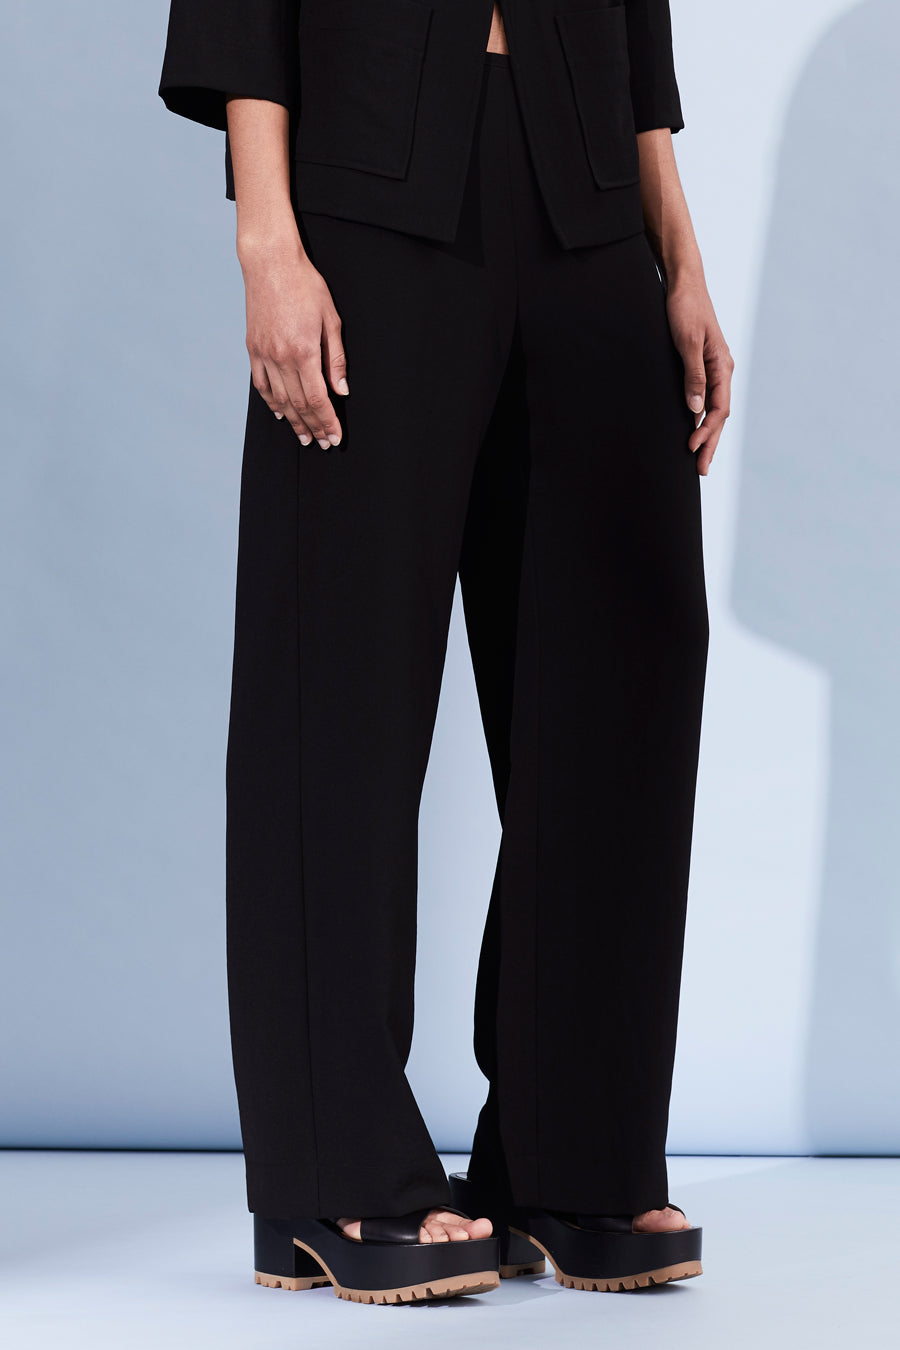 Liza Crepe Lined Coby Pant - only xsm left!